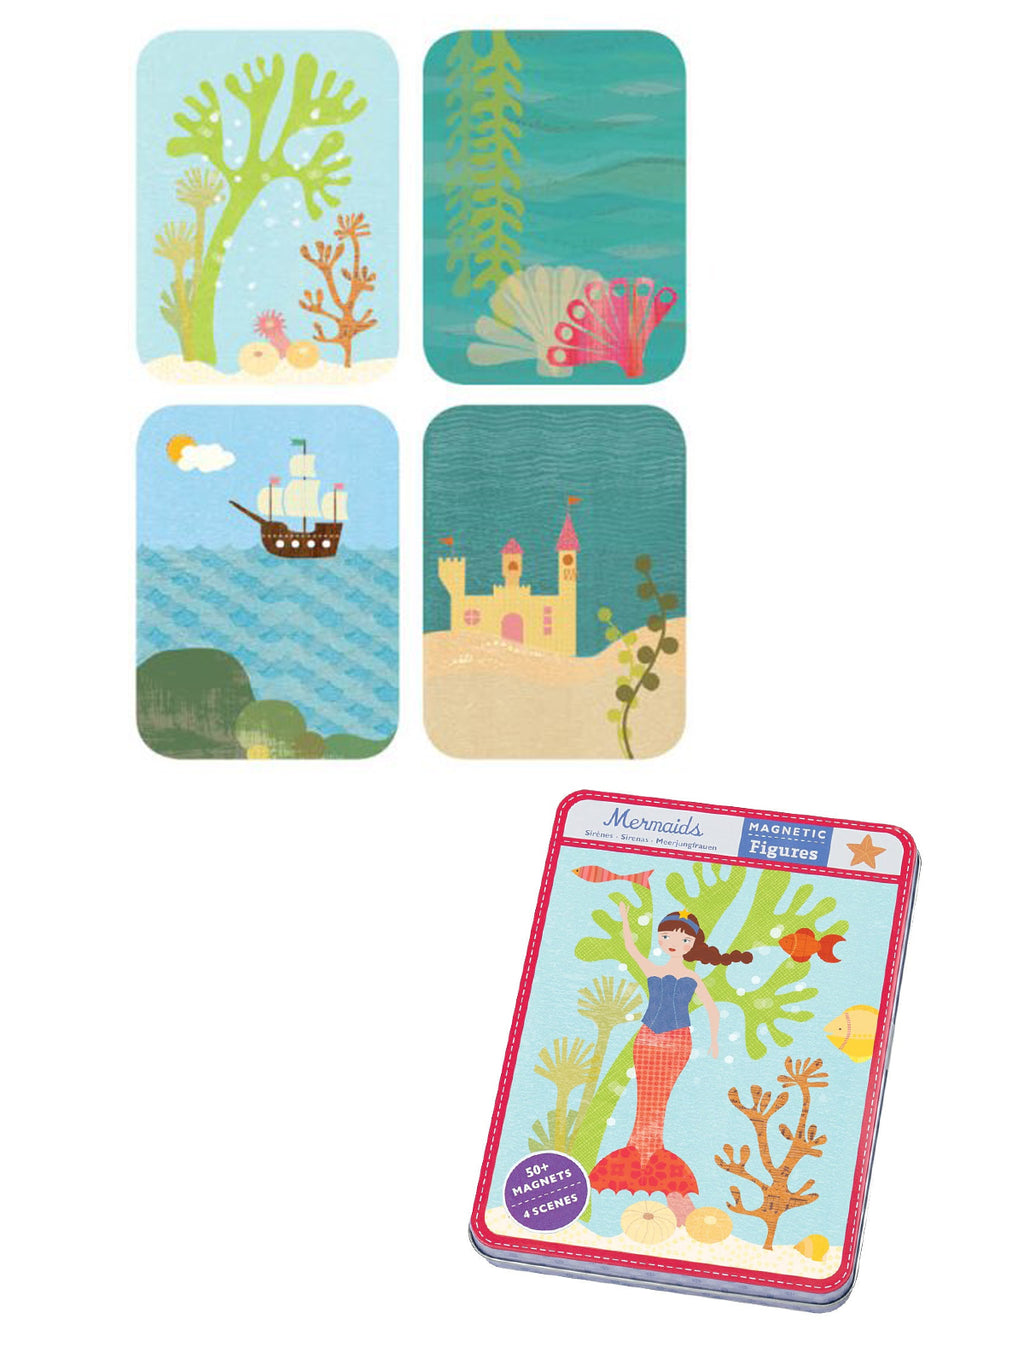 Mermaids Magnetic Figures Set